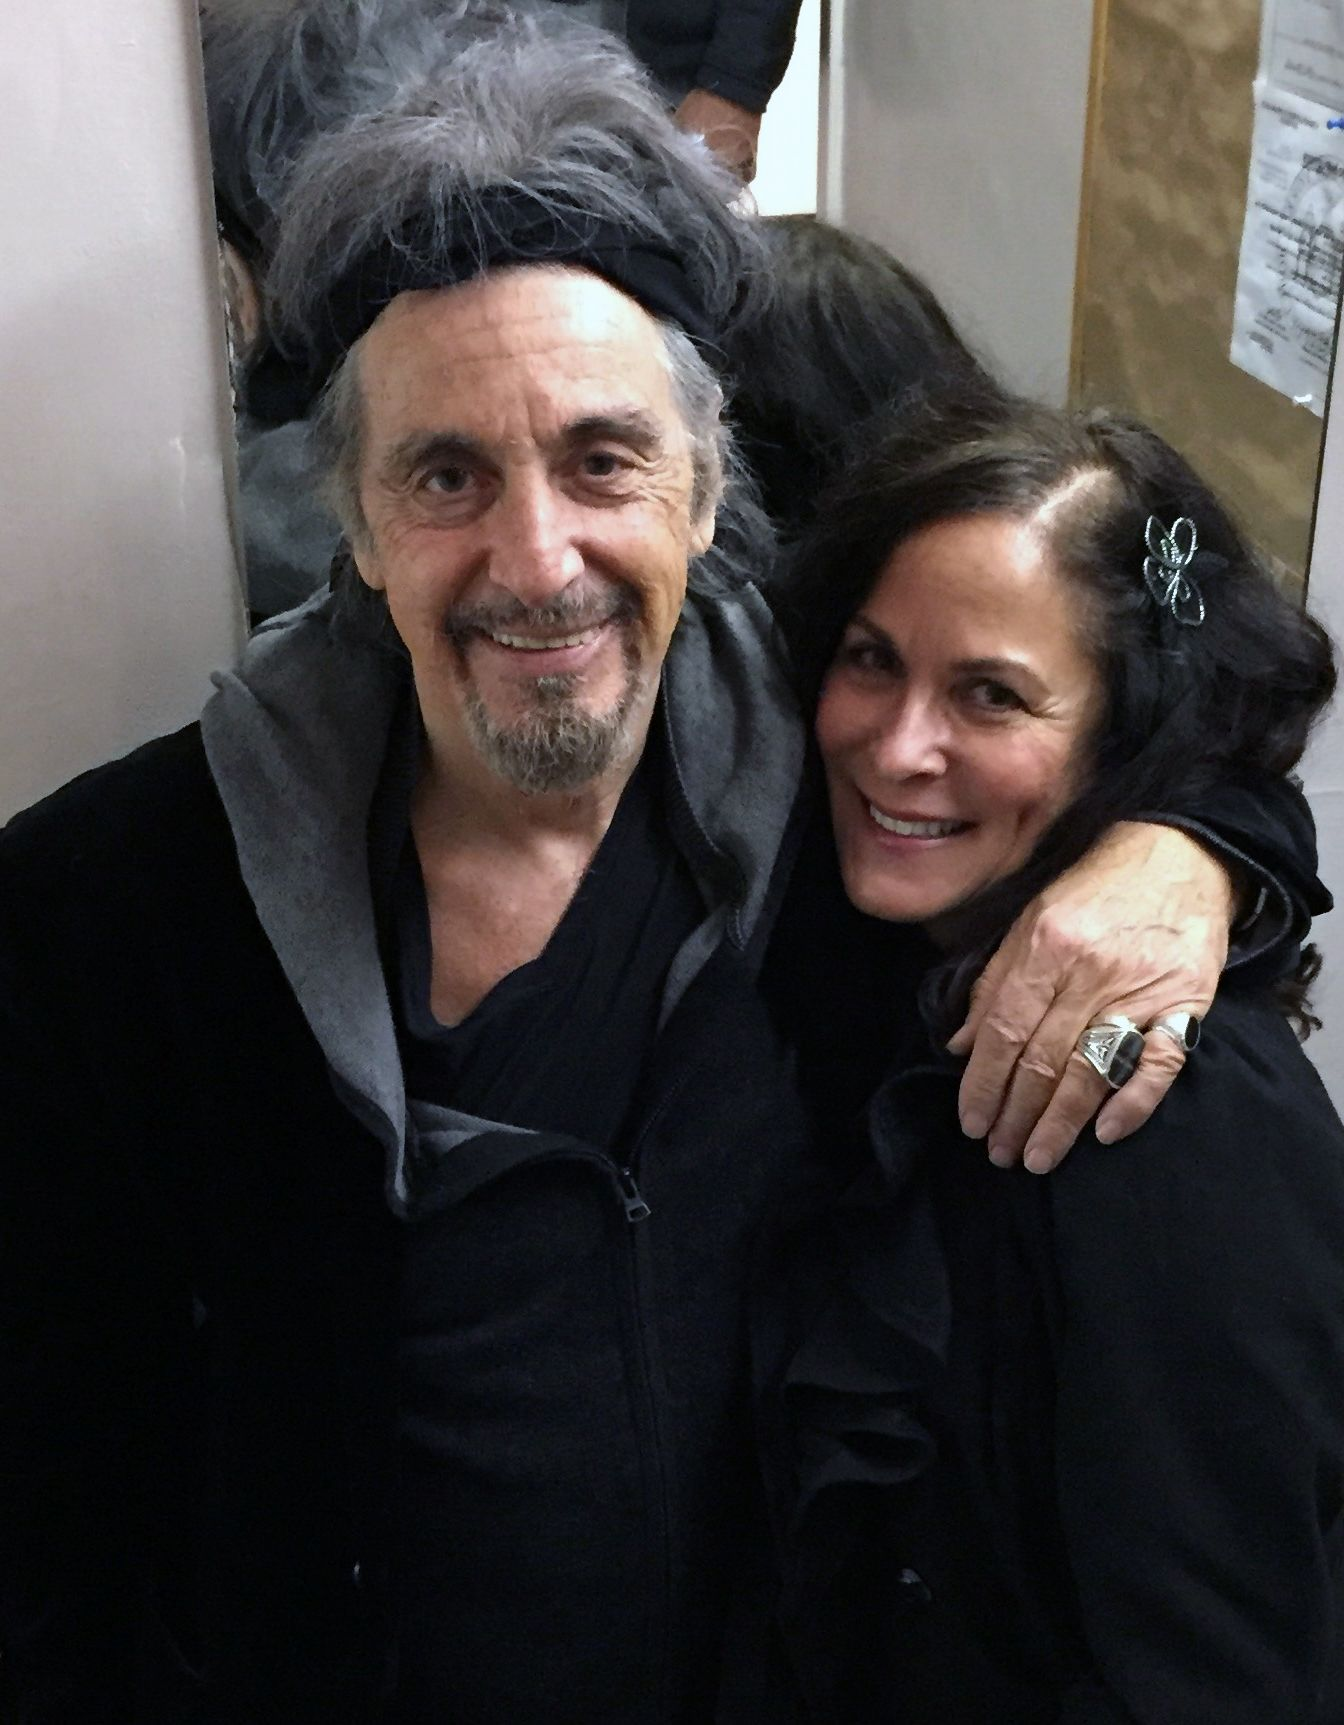 Al pacino backstage with roberta pacino after his nov 18 2015 al pacino backstage with roberta pacino after his nov 18 2015 performance of china doll m4hsunfo Gallery